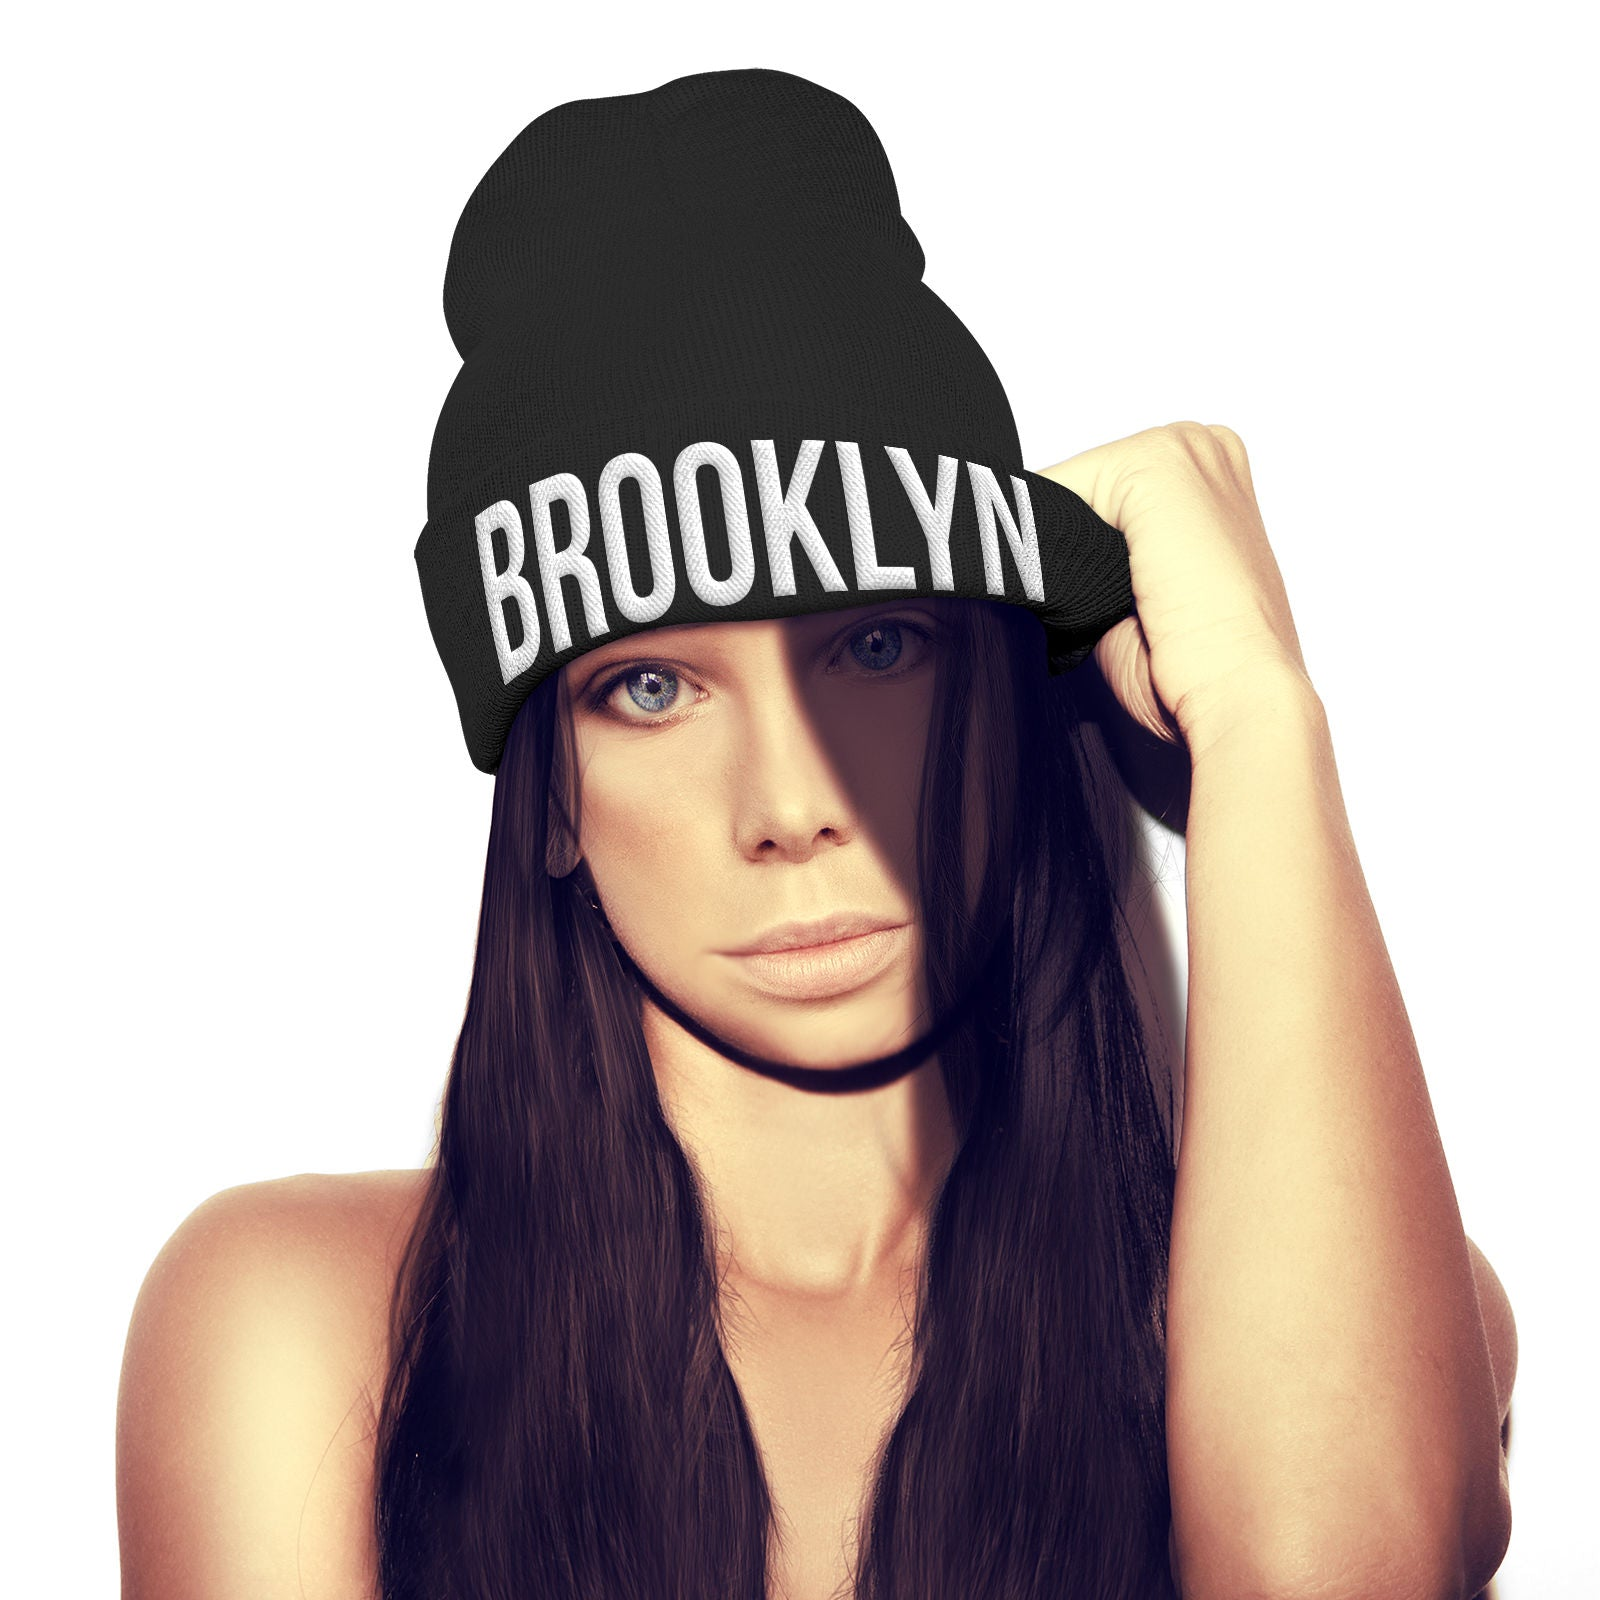 13d5df23b21 Product image 1 Brooklyn Beanie Hat New York City Gangster Hat NYC Gift  Stocking Xmas Bobble hat